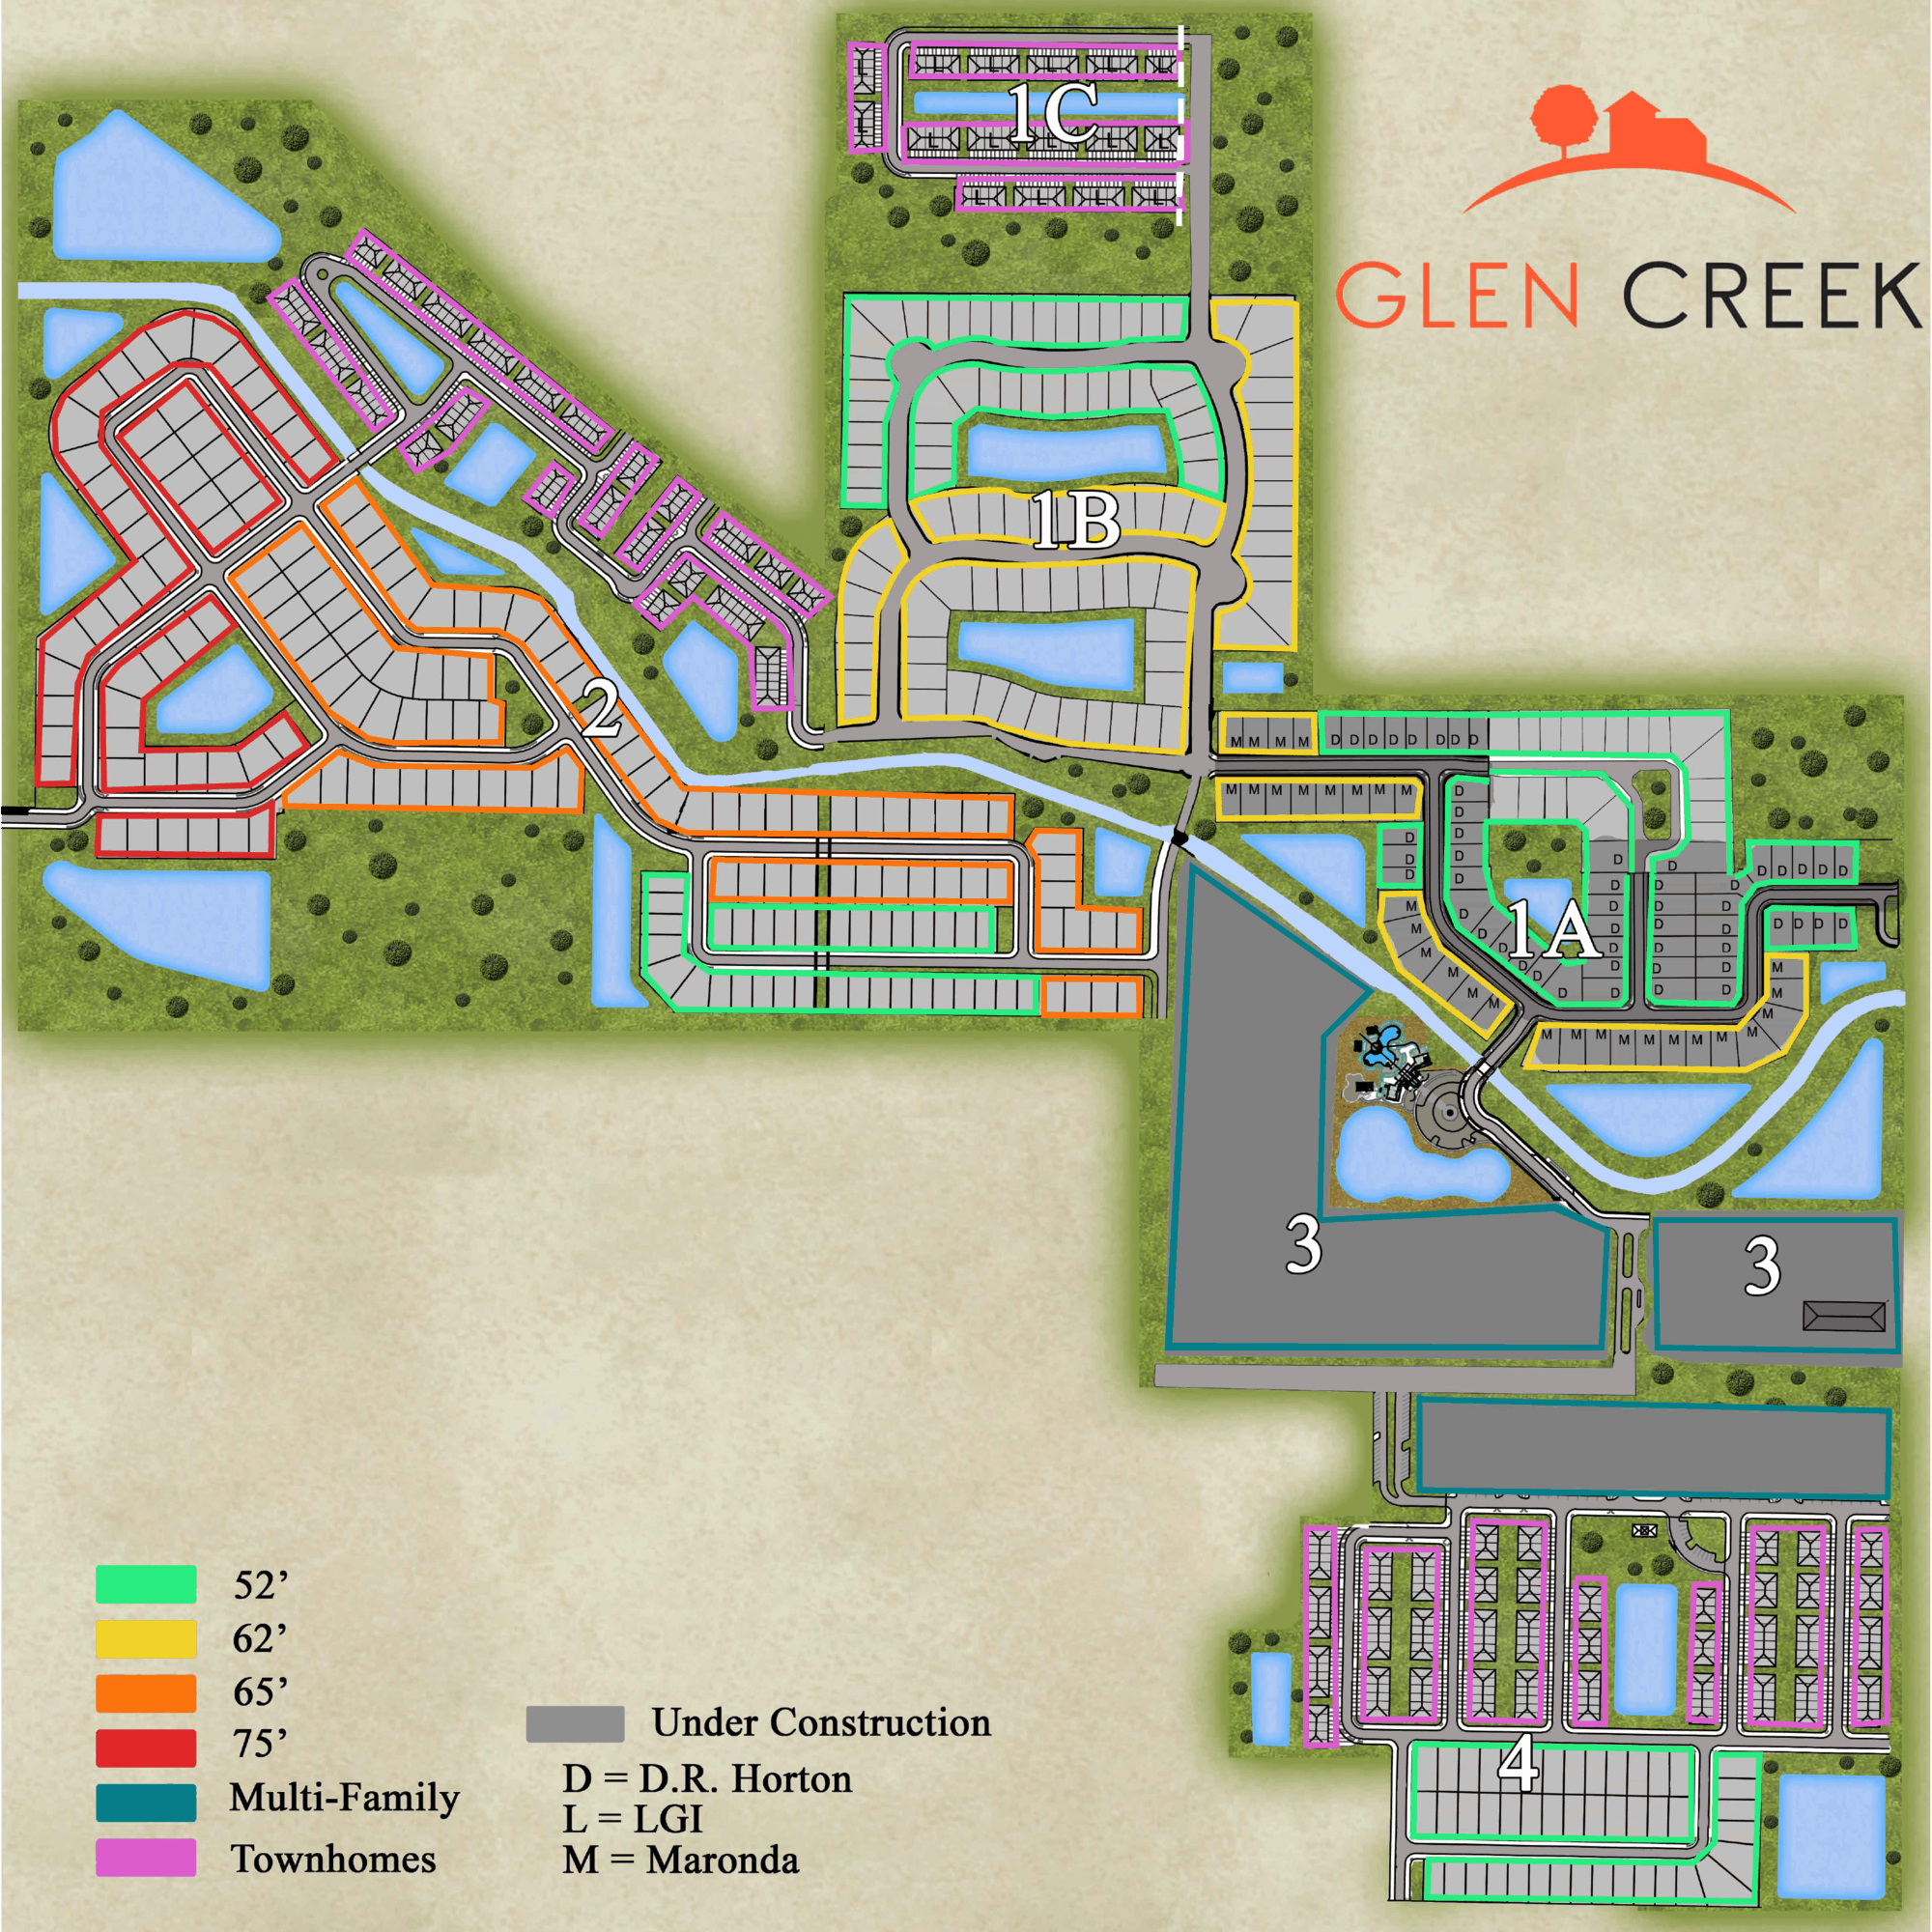 Glen Creek Site Plan